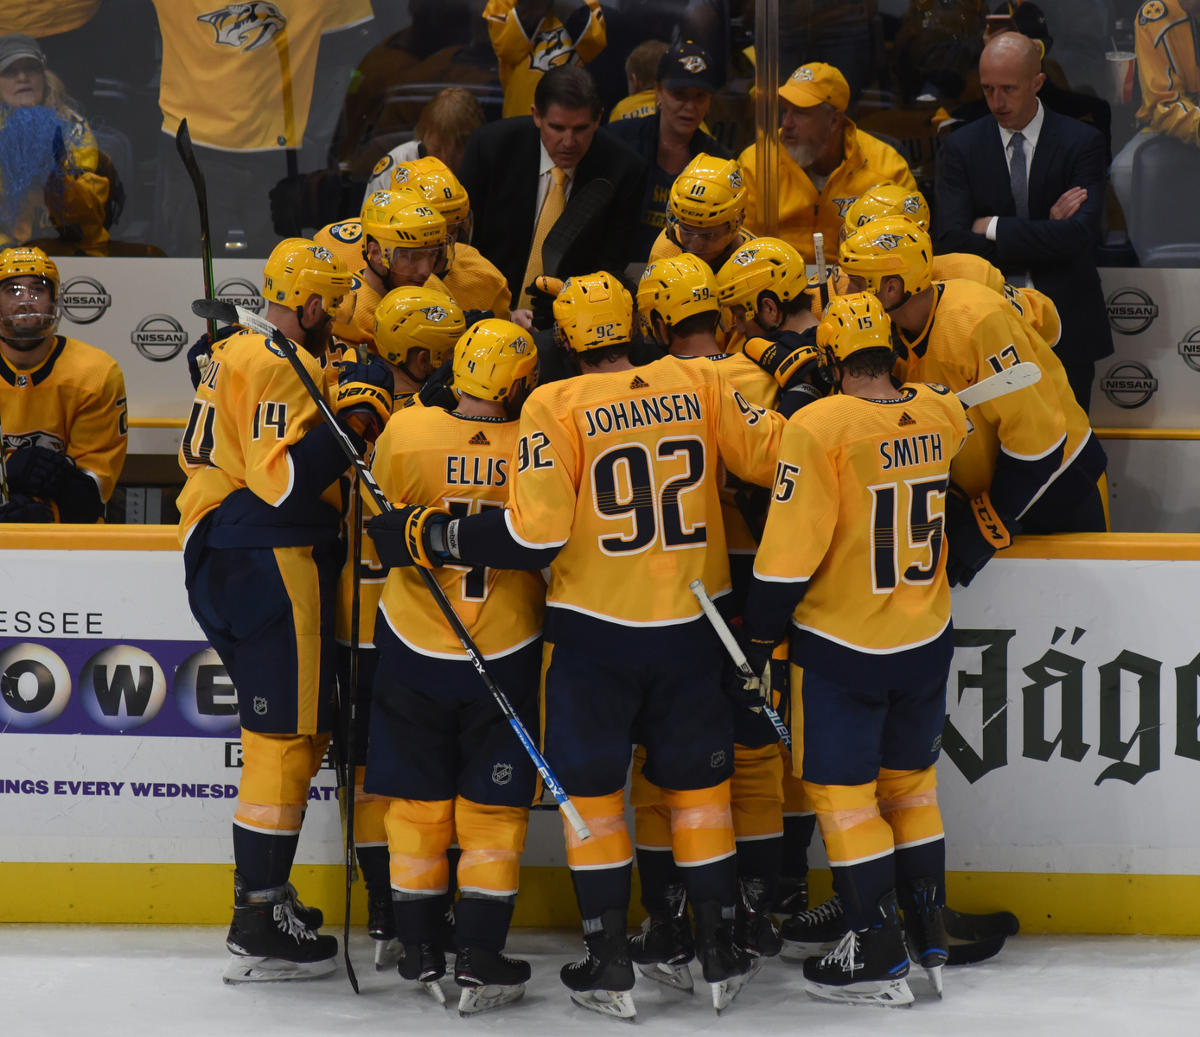 Predators' Arvidsson out 4-6 weeks after Bortuzzo cross-check